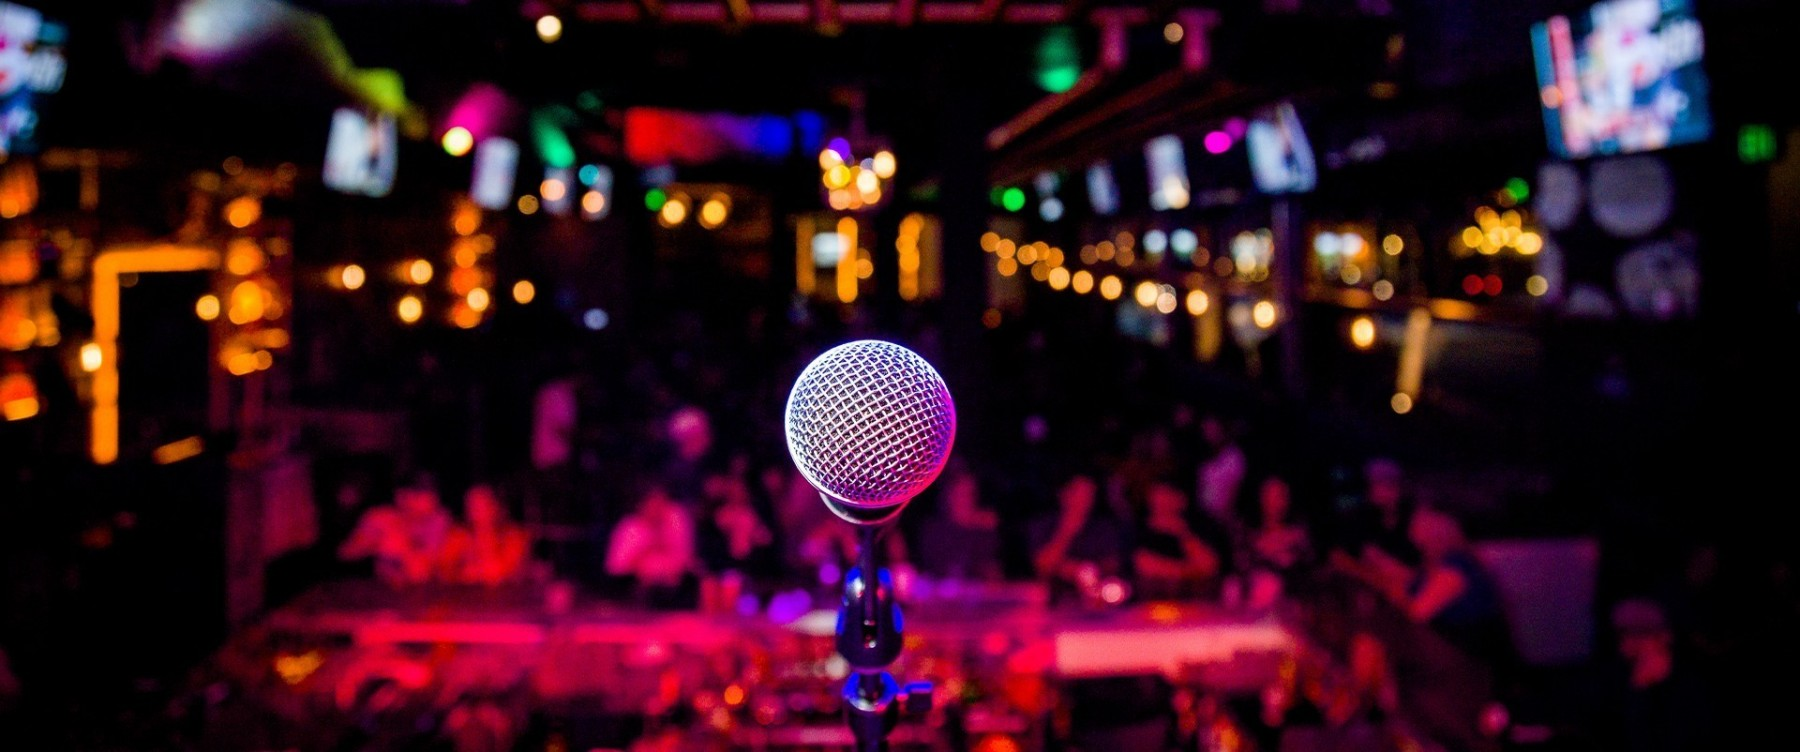 Microphone on a stage at a comedy club